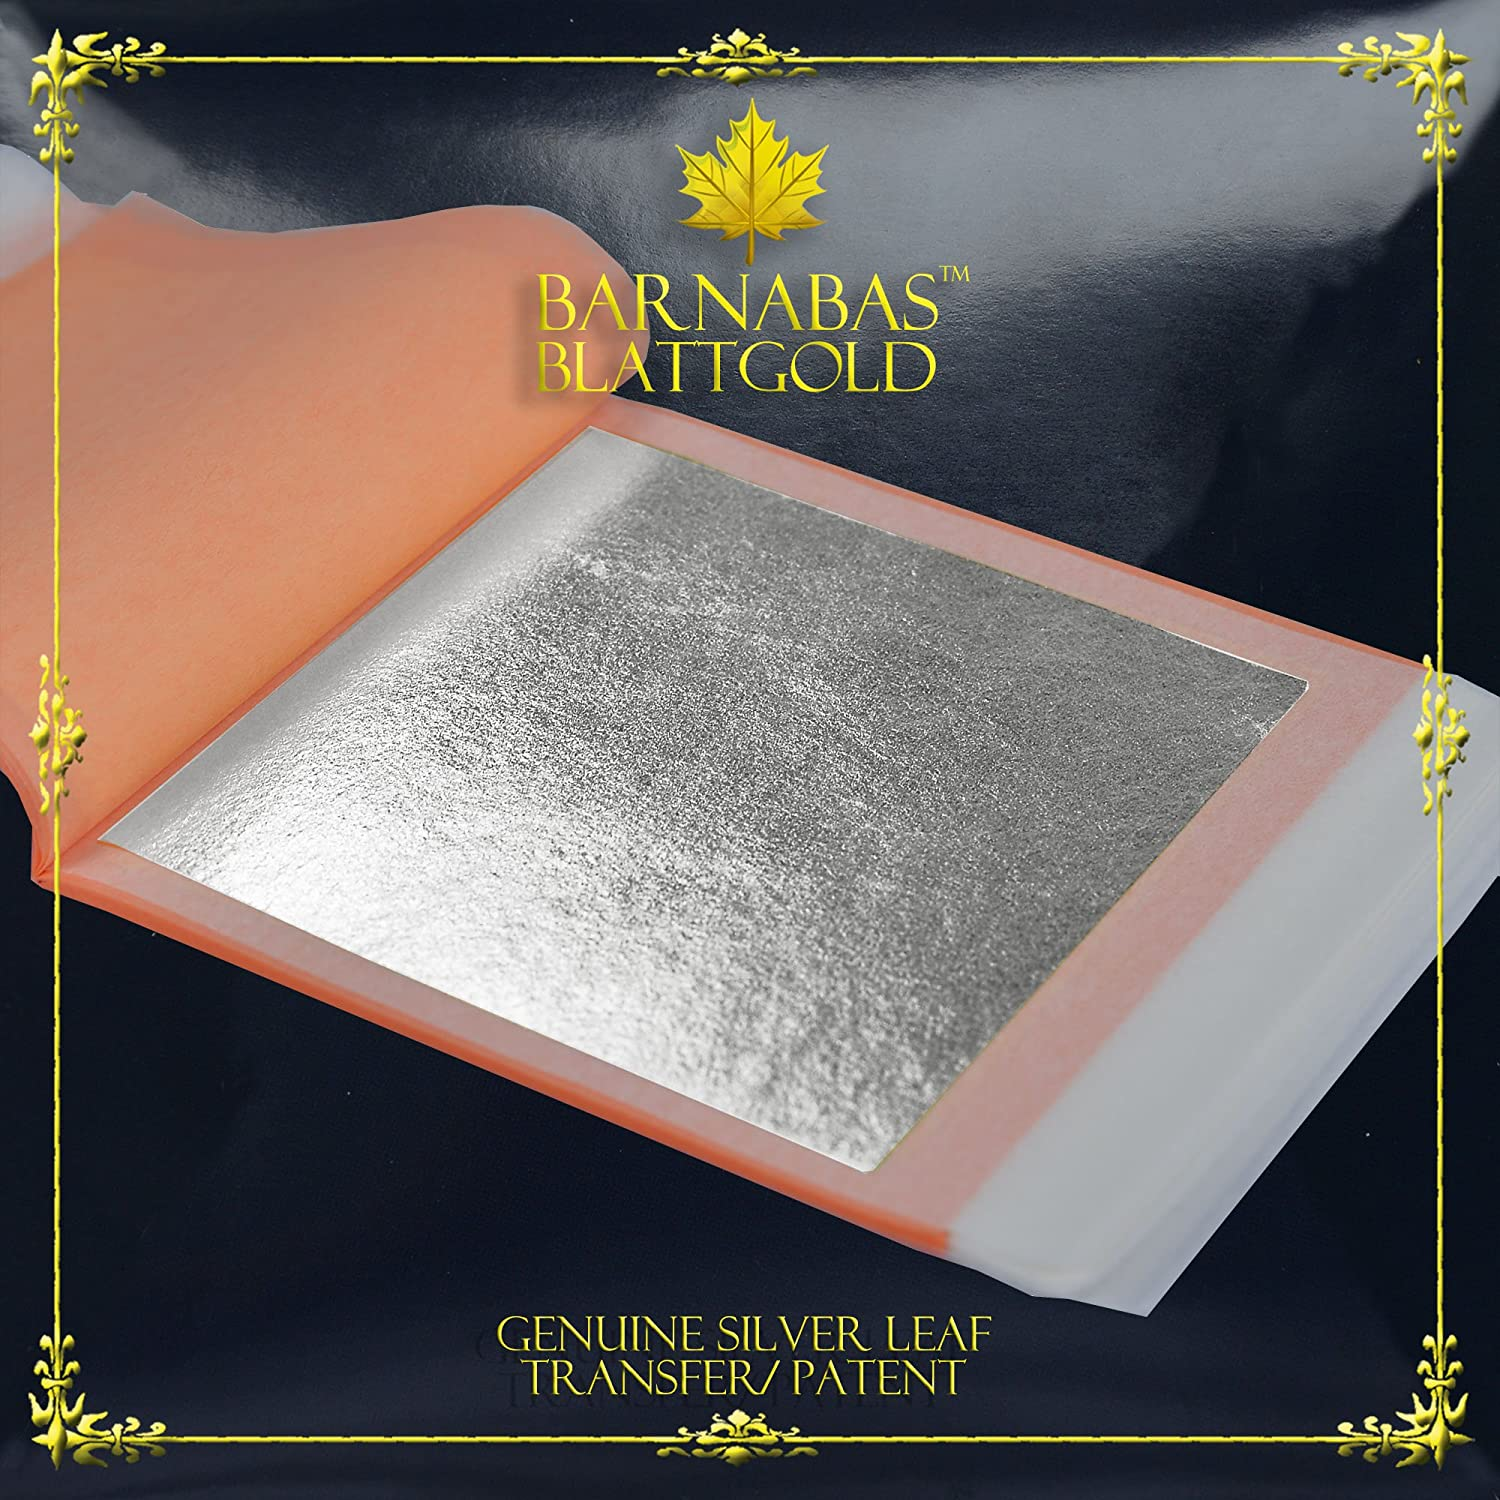 Genuine Silver Leaf Sheets - by Barnabas Blattgold - 3.75 inches - 25 Sheets - Transfer Patent Leaf S95-TRF-25